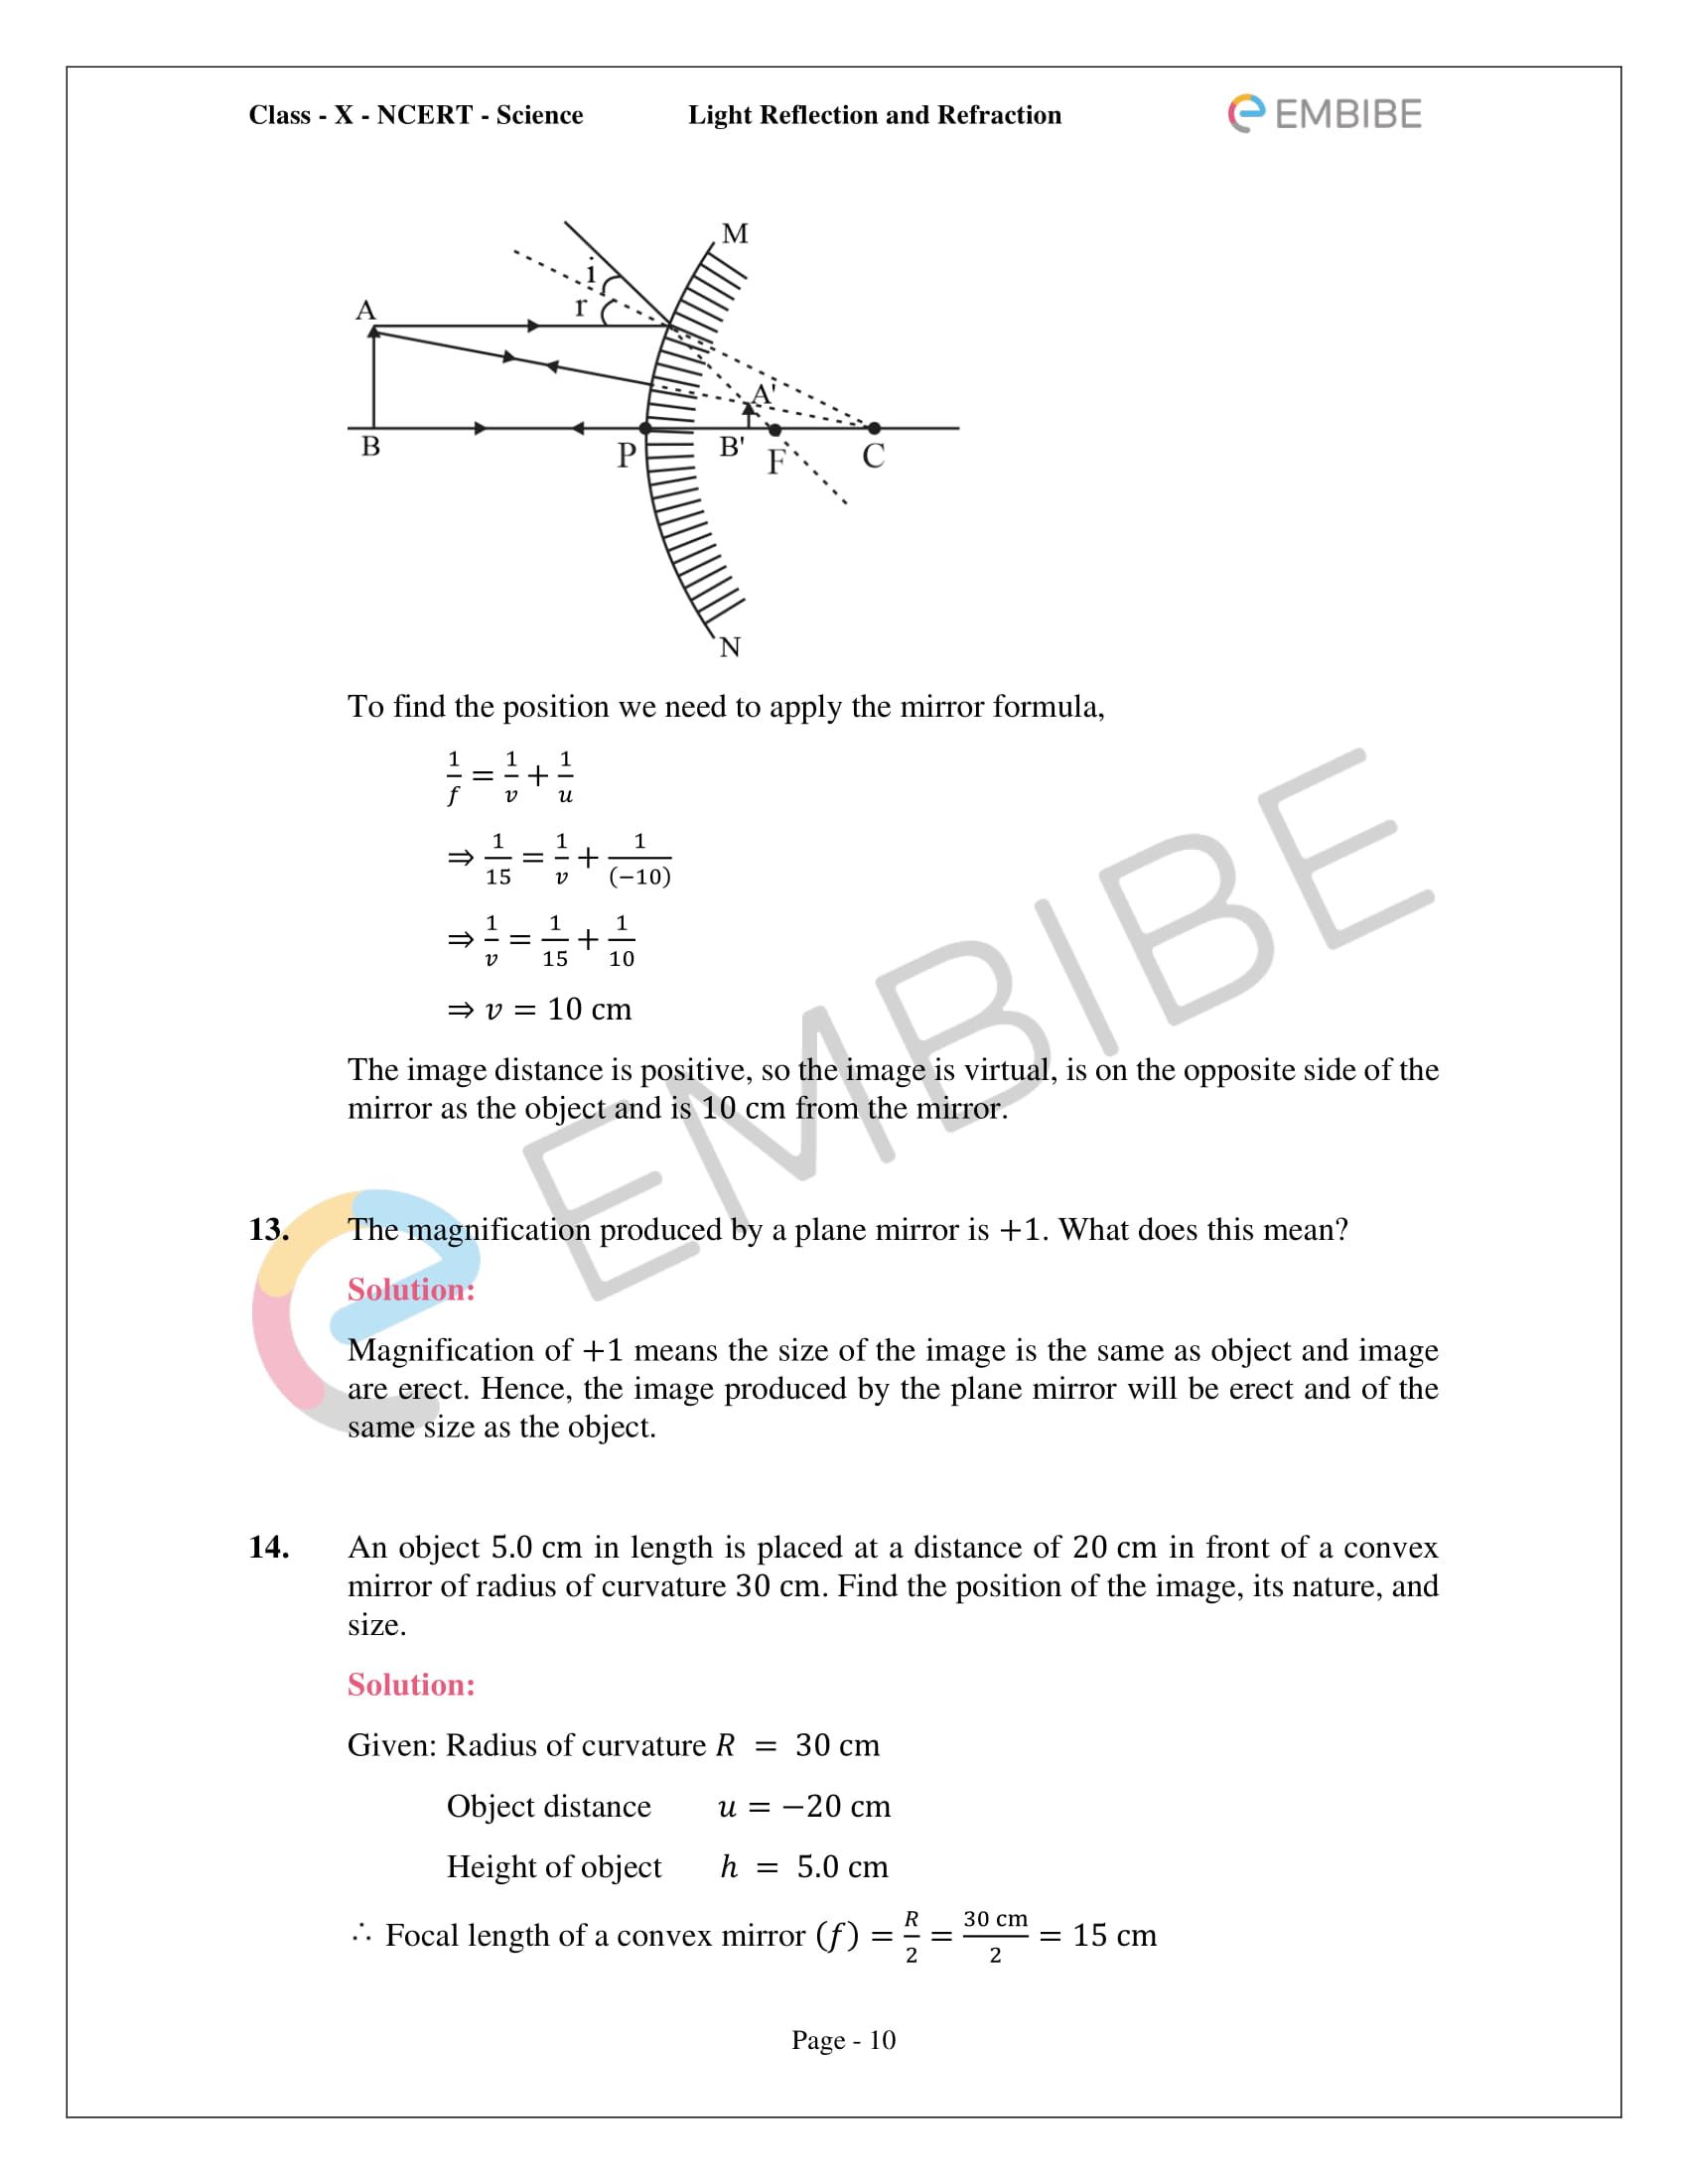 CBSE NCERT Solutions For Class 10 Science Chapter 10 - Light Reflection and Refraction - 10